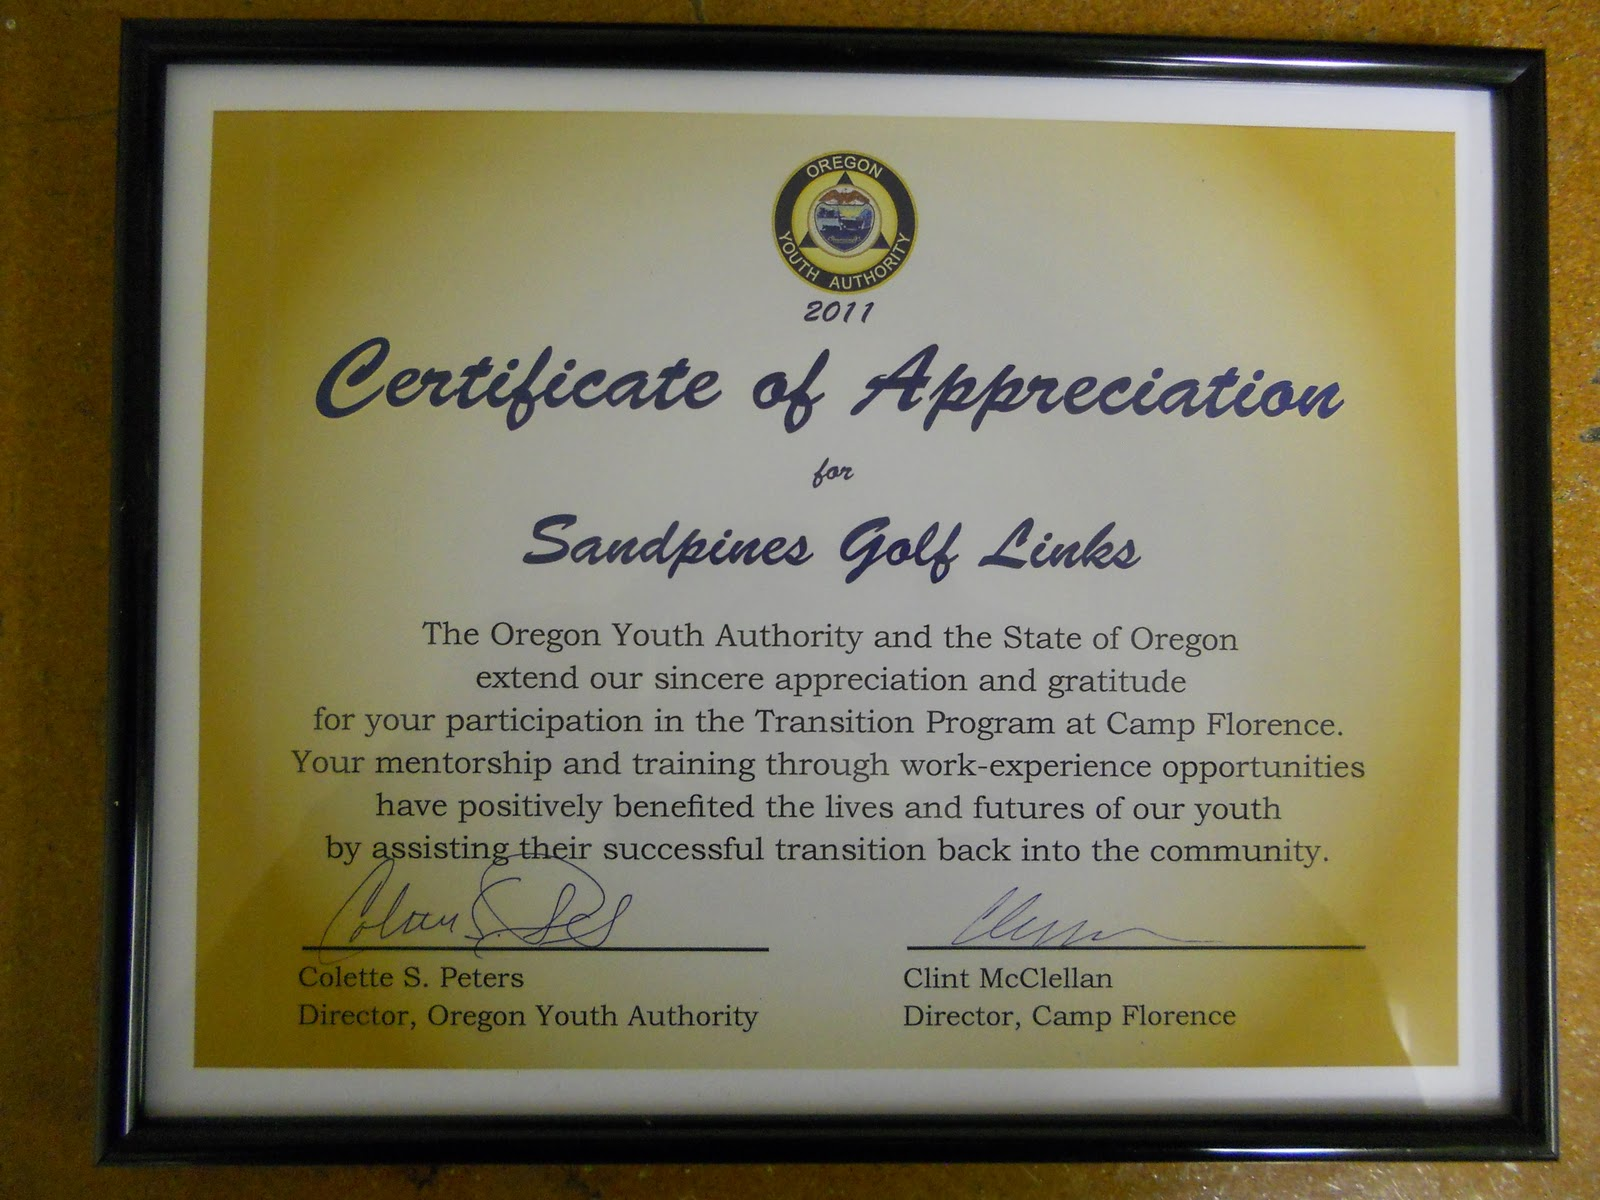 Certificate of appreciation for sponsorship template images usmc certificate of commendation template images templates certificate of appreciation for sponsorship template gallery sample certificate 1betcityfo Images